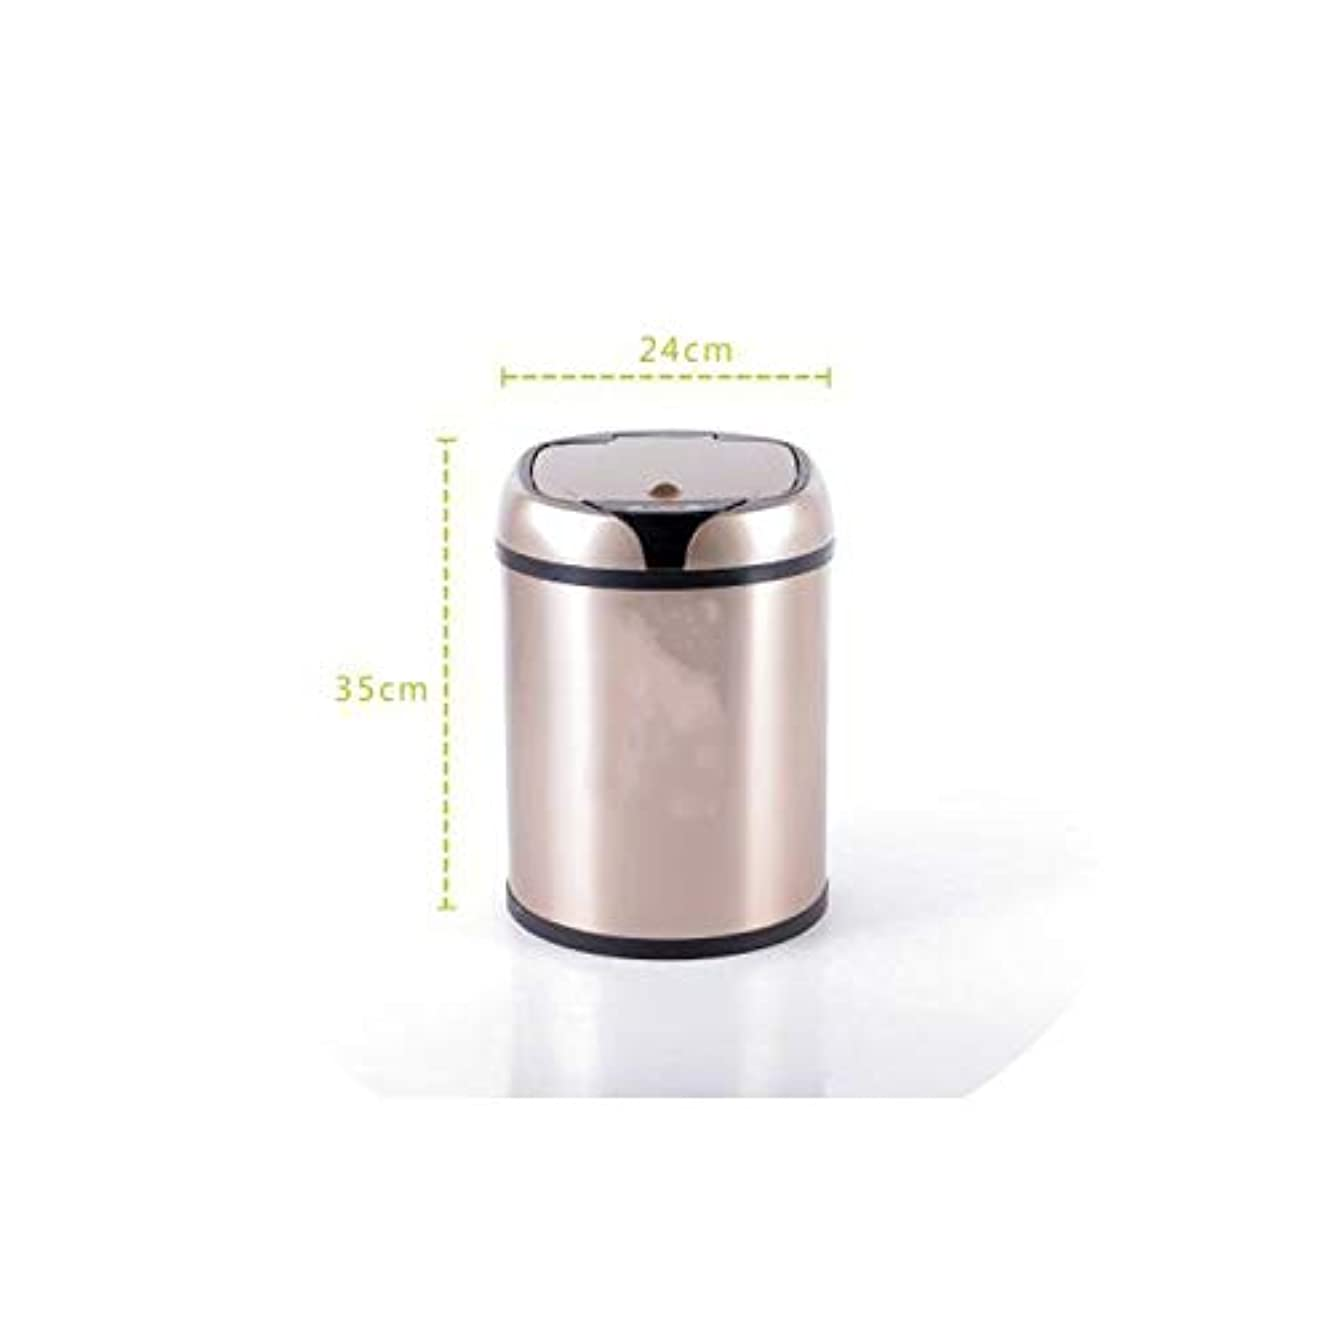 Trash Can Inductive Type Trash Can Automatic Kitchen and Rubbish Bin Stainless Steel Waste Bin,2